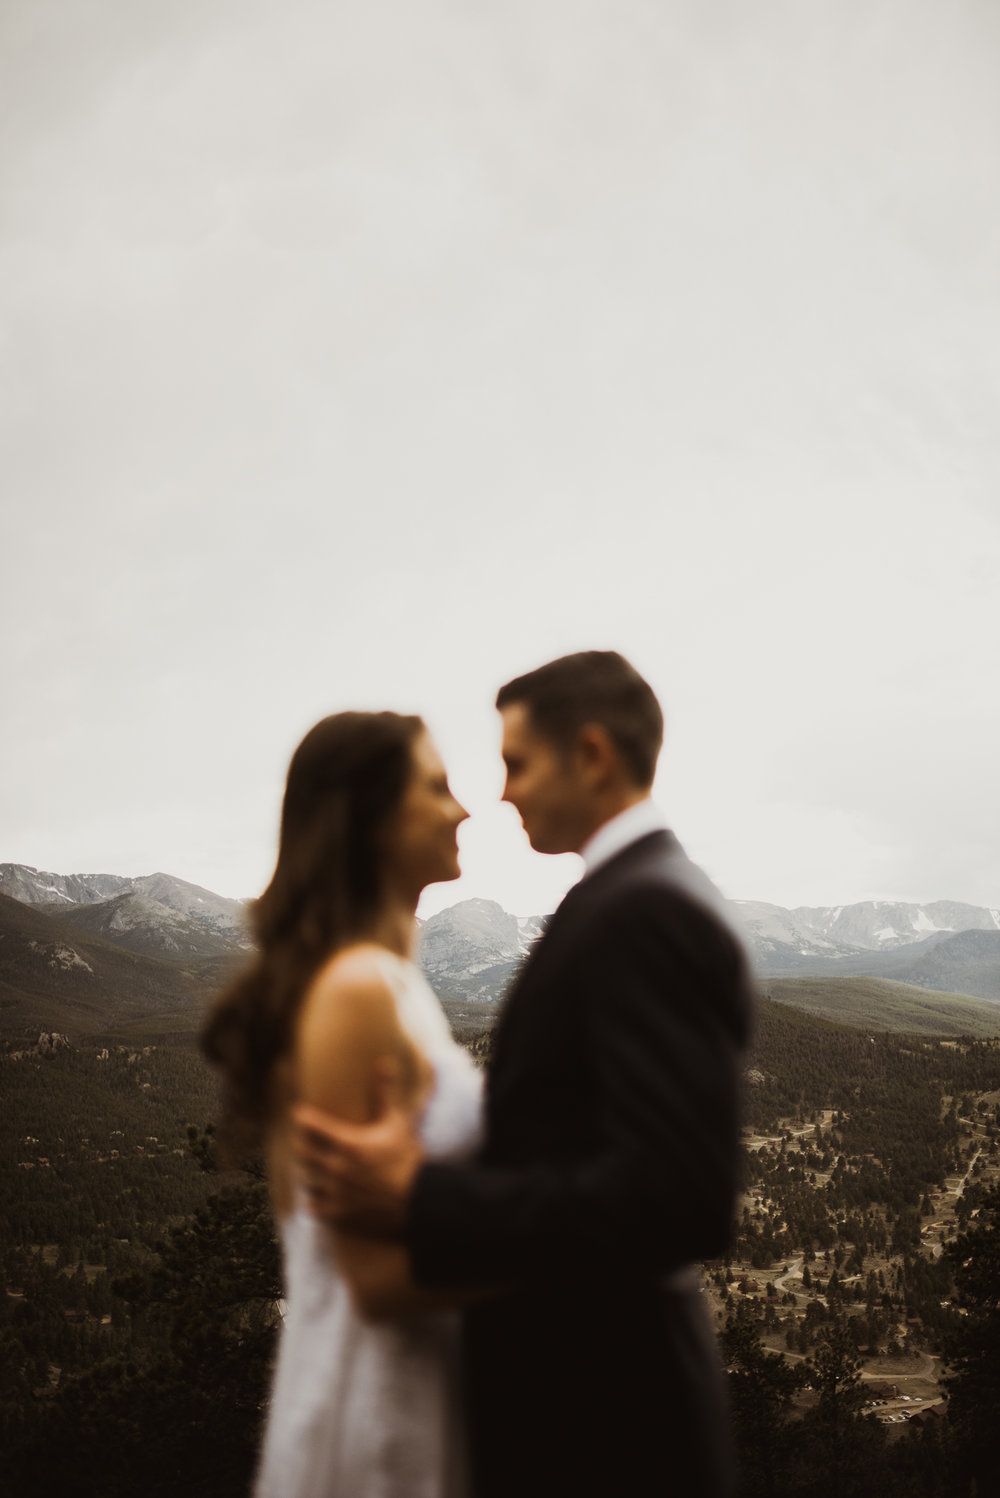 ©Isaiah + Taylor Photography - Estes National Park Adventure Elopement, Colorado Rockies-113.jpg